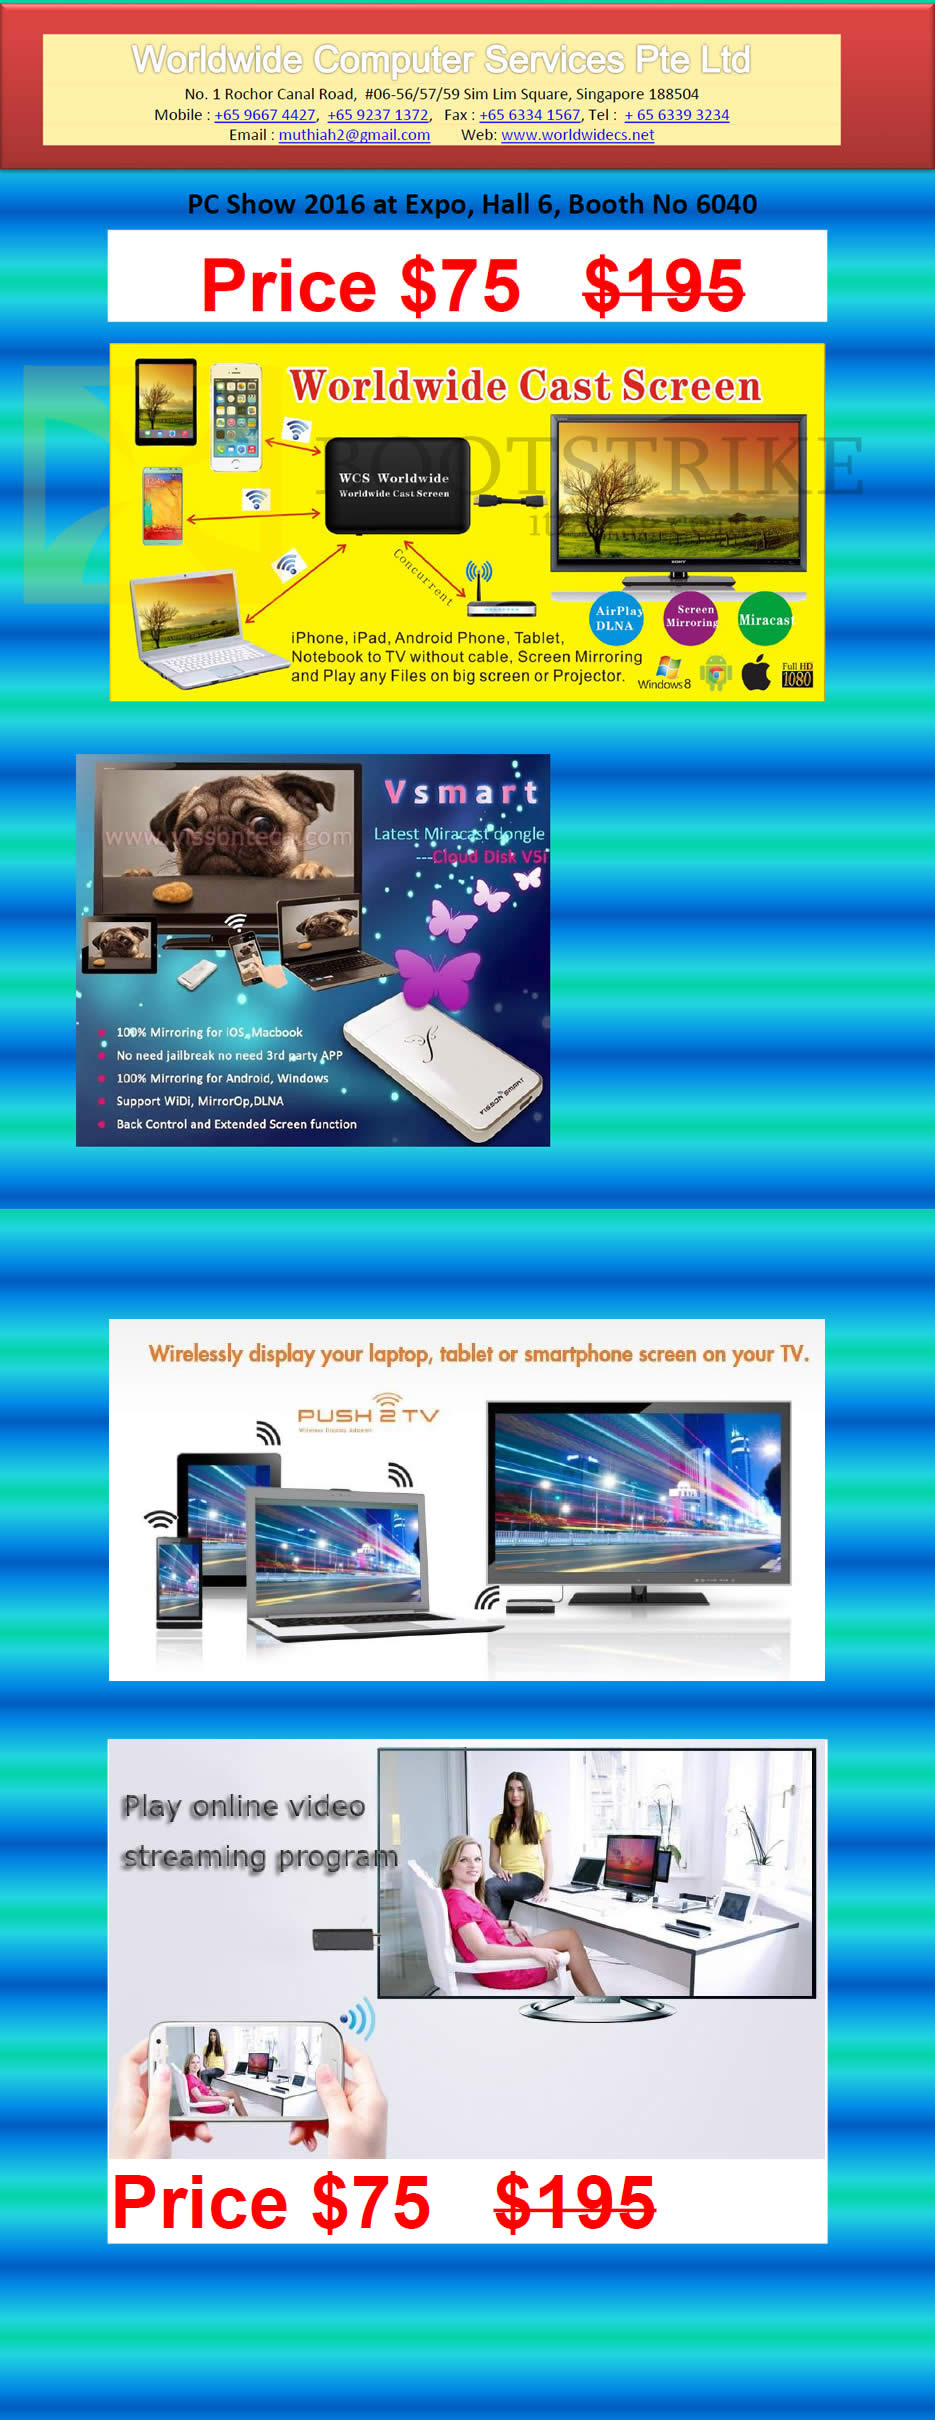 PC SHOW 2016 price list image brochure of Worldwide Computer Services Cast Screen Vsmart Dongle